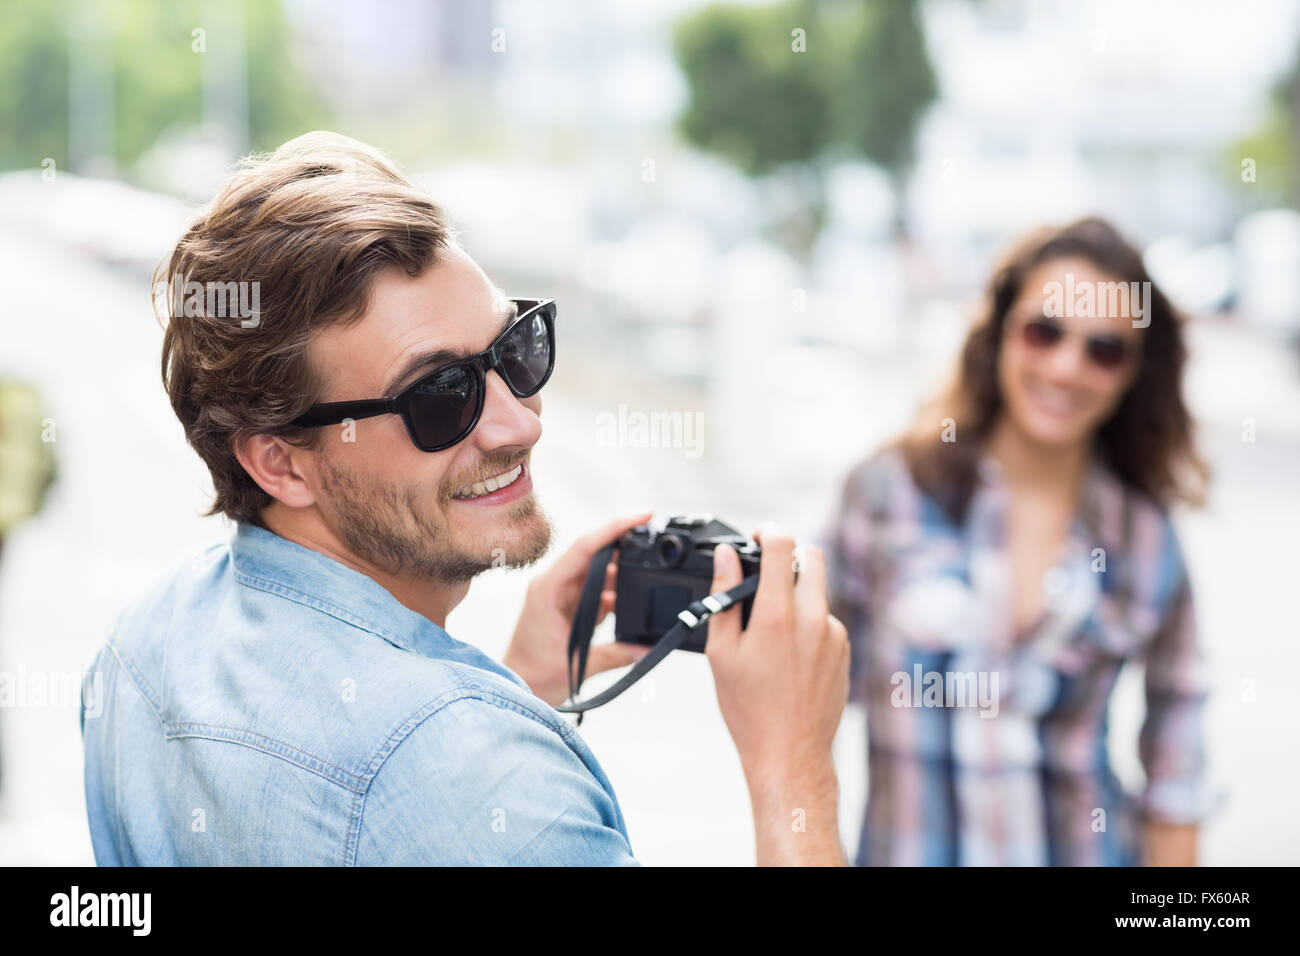 Man smiling at camera Photo Stock